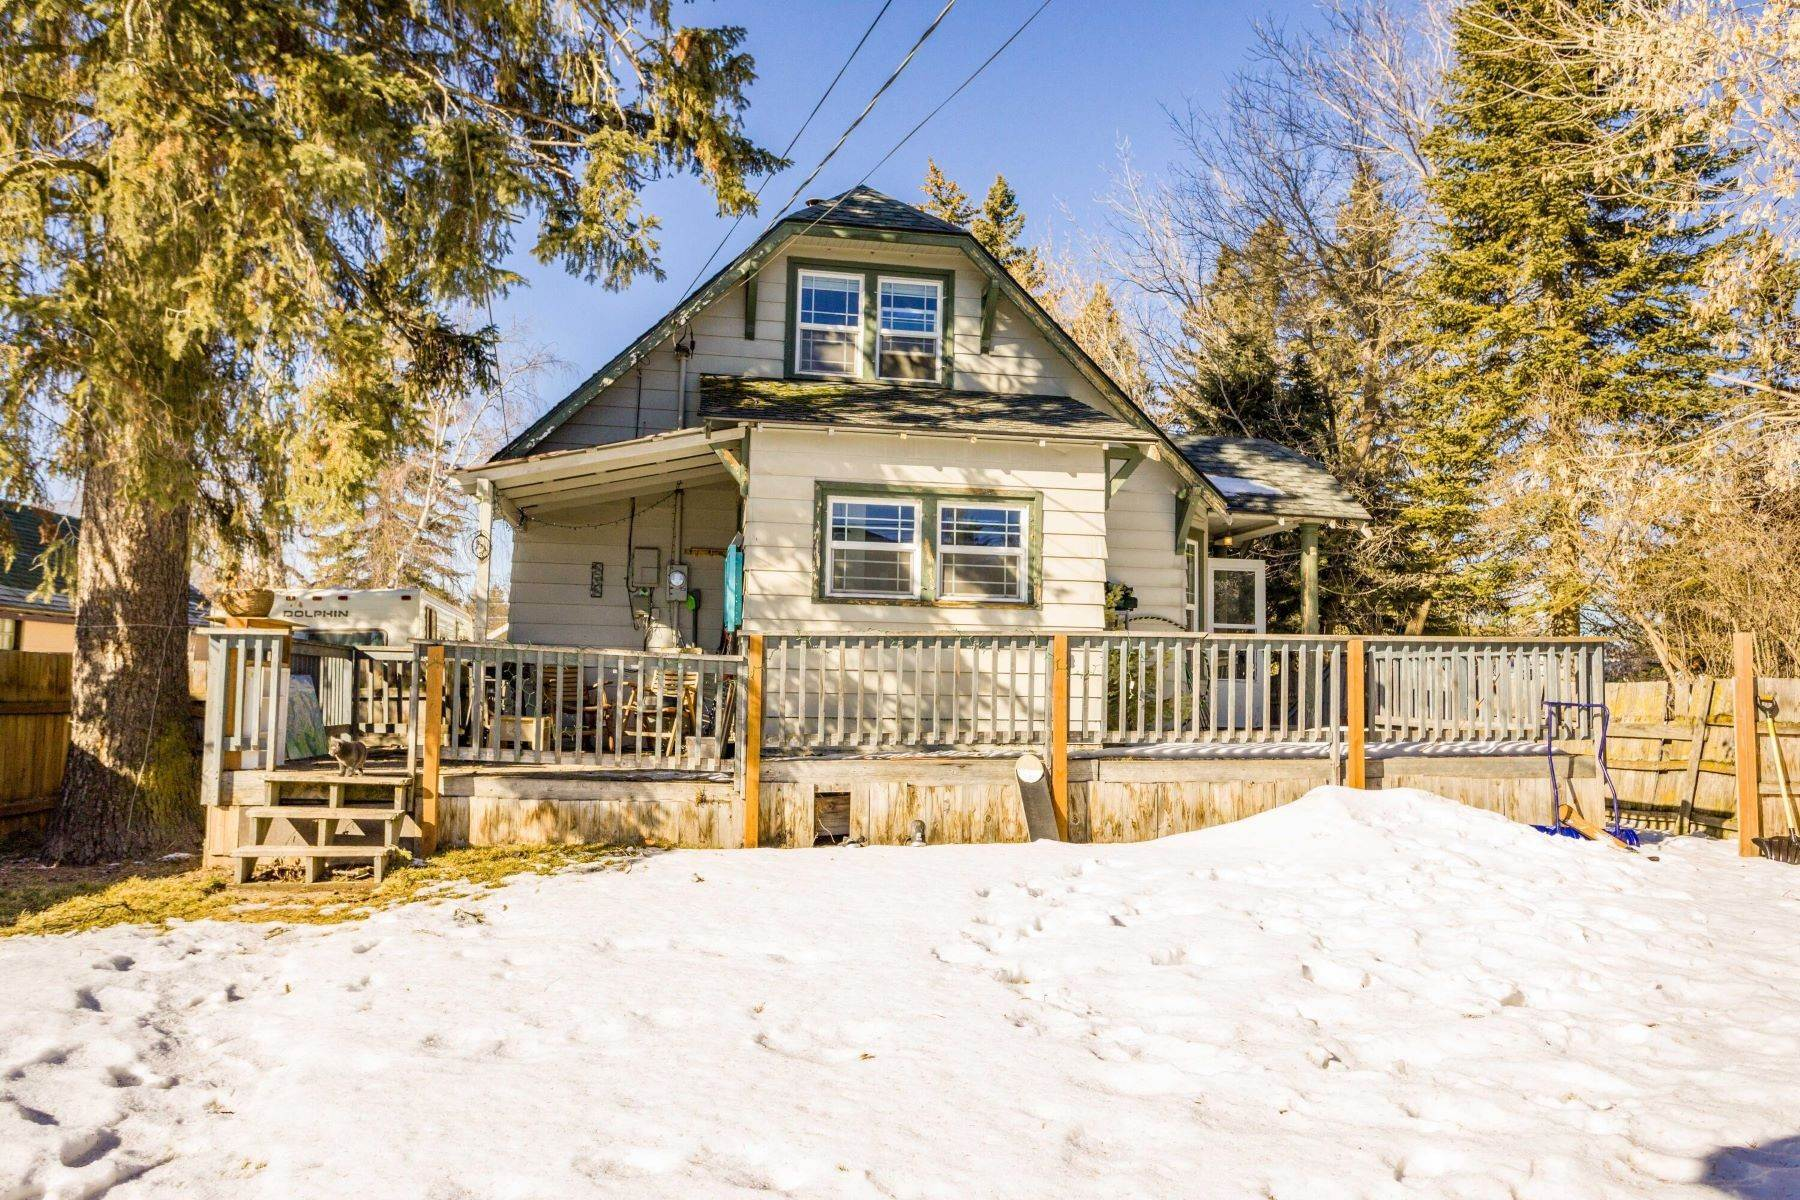 Property for Sale at Whitefish Family Home 937 Kalispell Avenue Whitefish, Montana 59937 United States